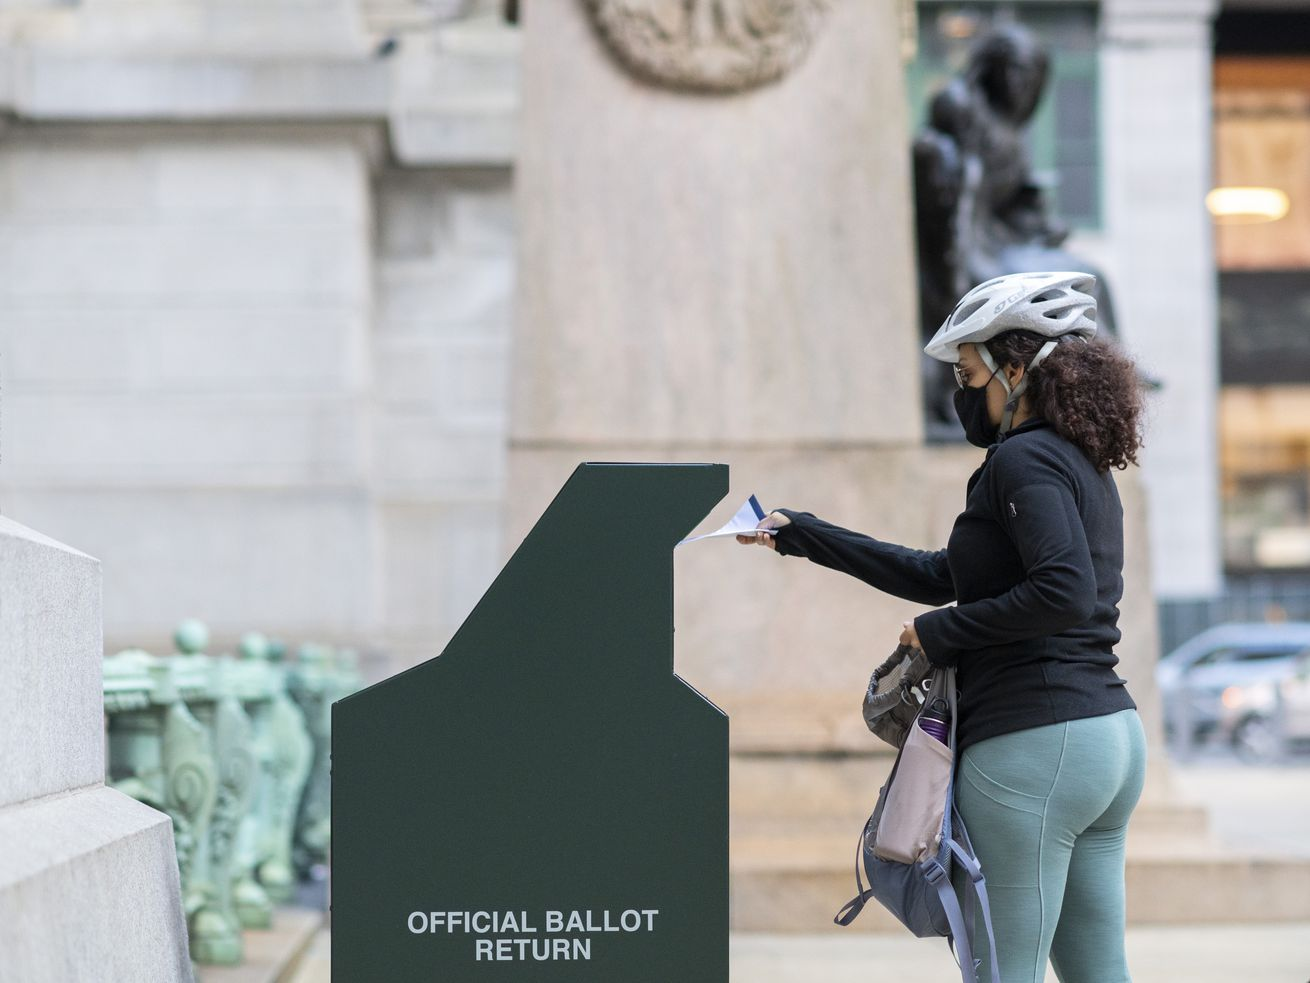 "A woman in a grey bike helmet, black mask, and glasses is seen in profile. She is placing a white envelope into a metal green receptacle that says ""Official Ballot Return"" on the side."